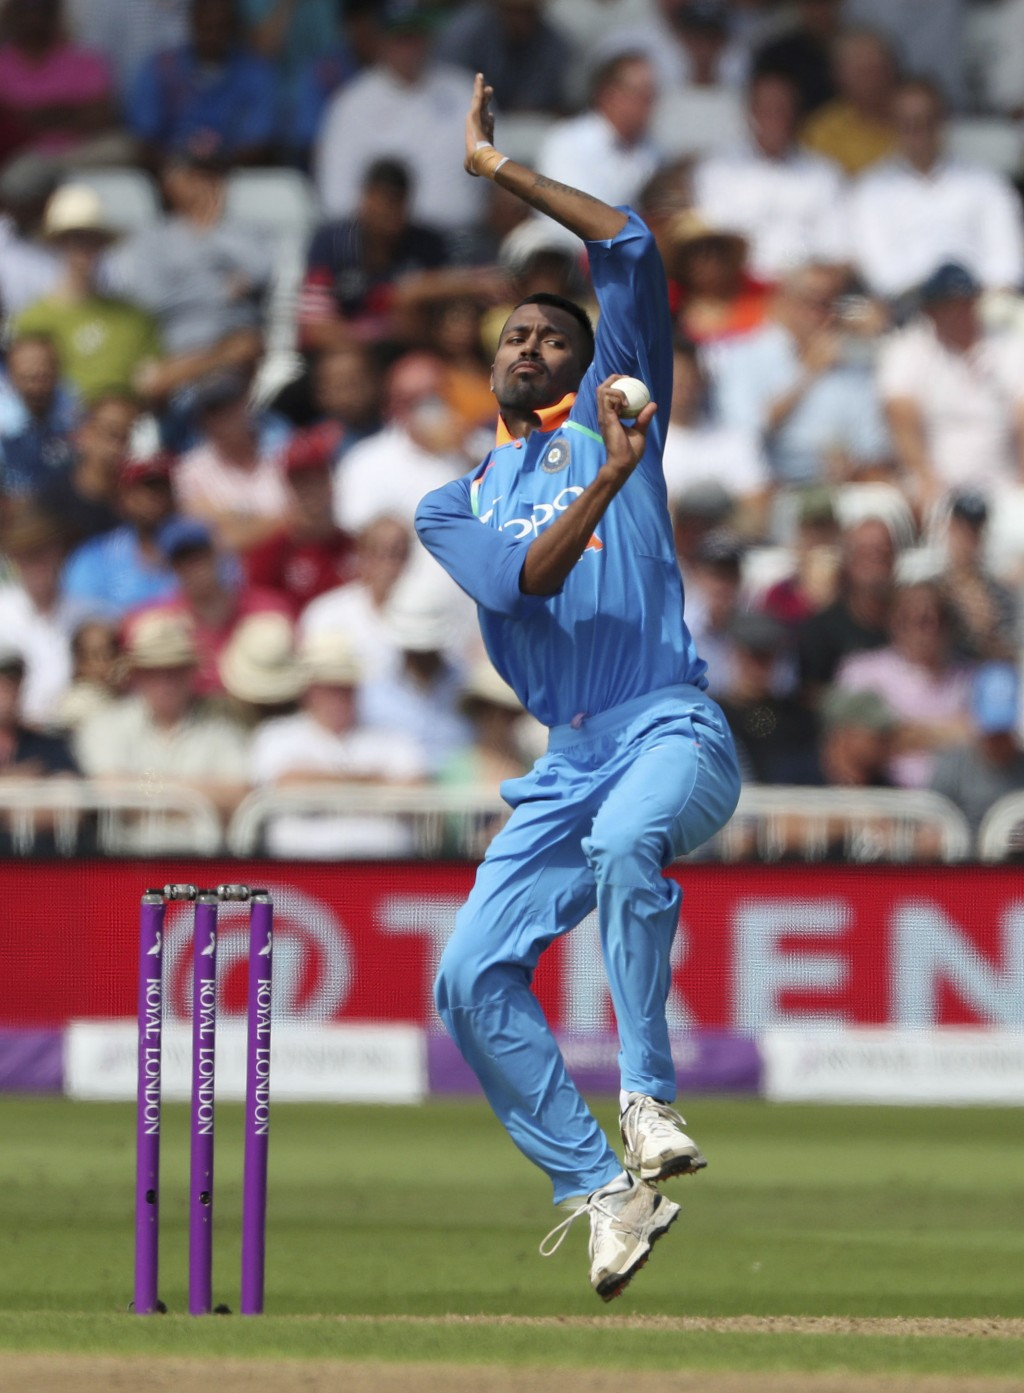 India's Hardik Pandya bowls during the One Day International Series cricket match between England and India at Trent Bridge, Nottingham, England, Thur